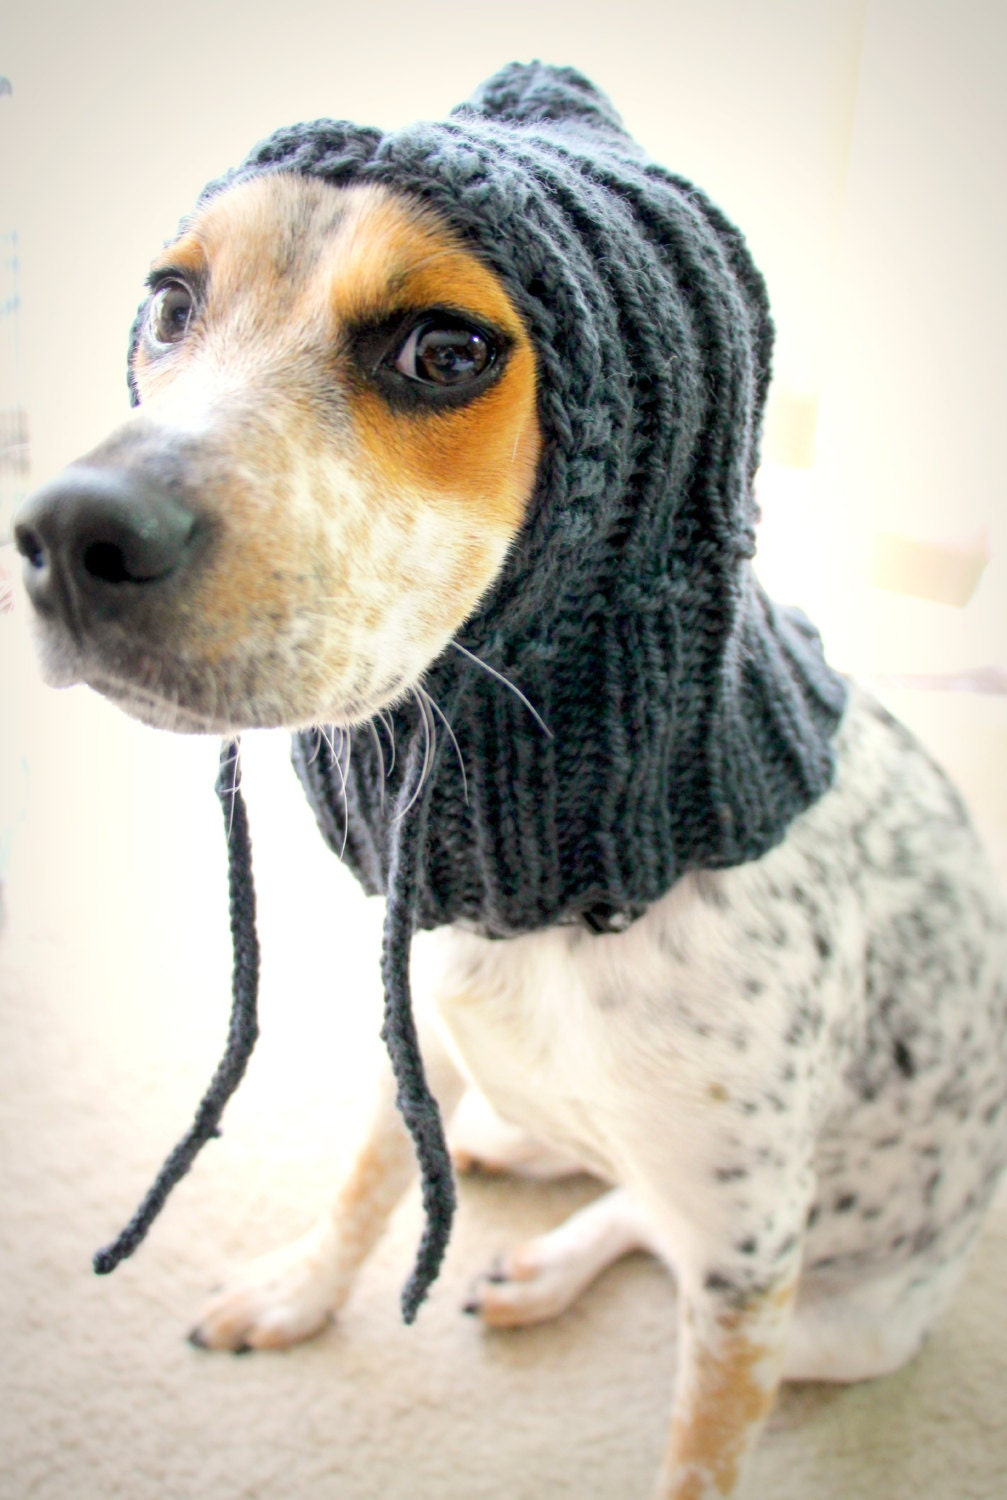 Knitting Patterns Dog Accessories : Custom knit dog hat dog hoodie pet scarf pet clothes dog